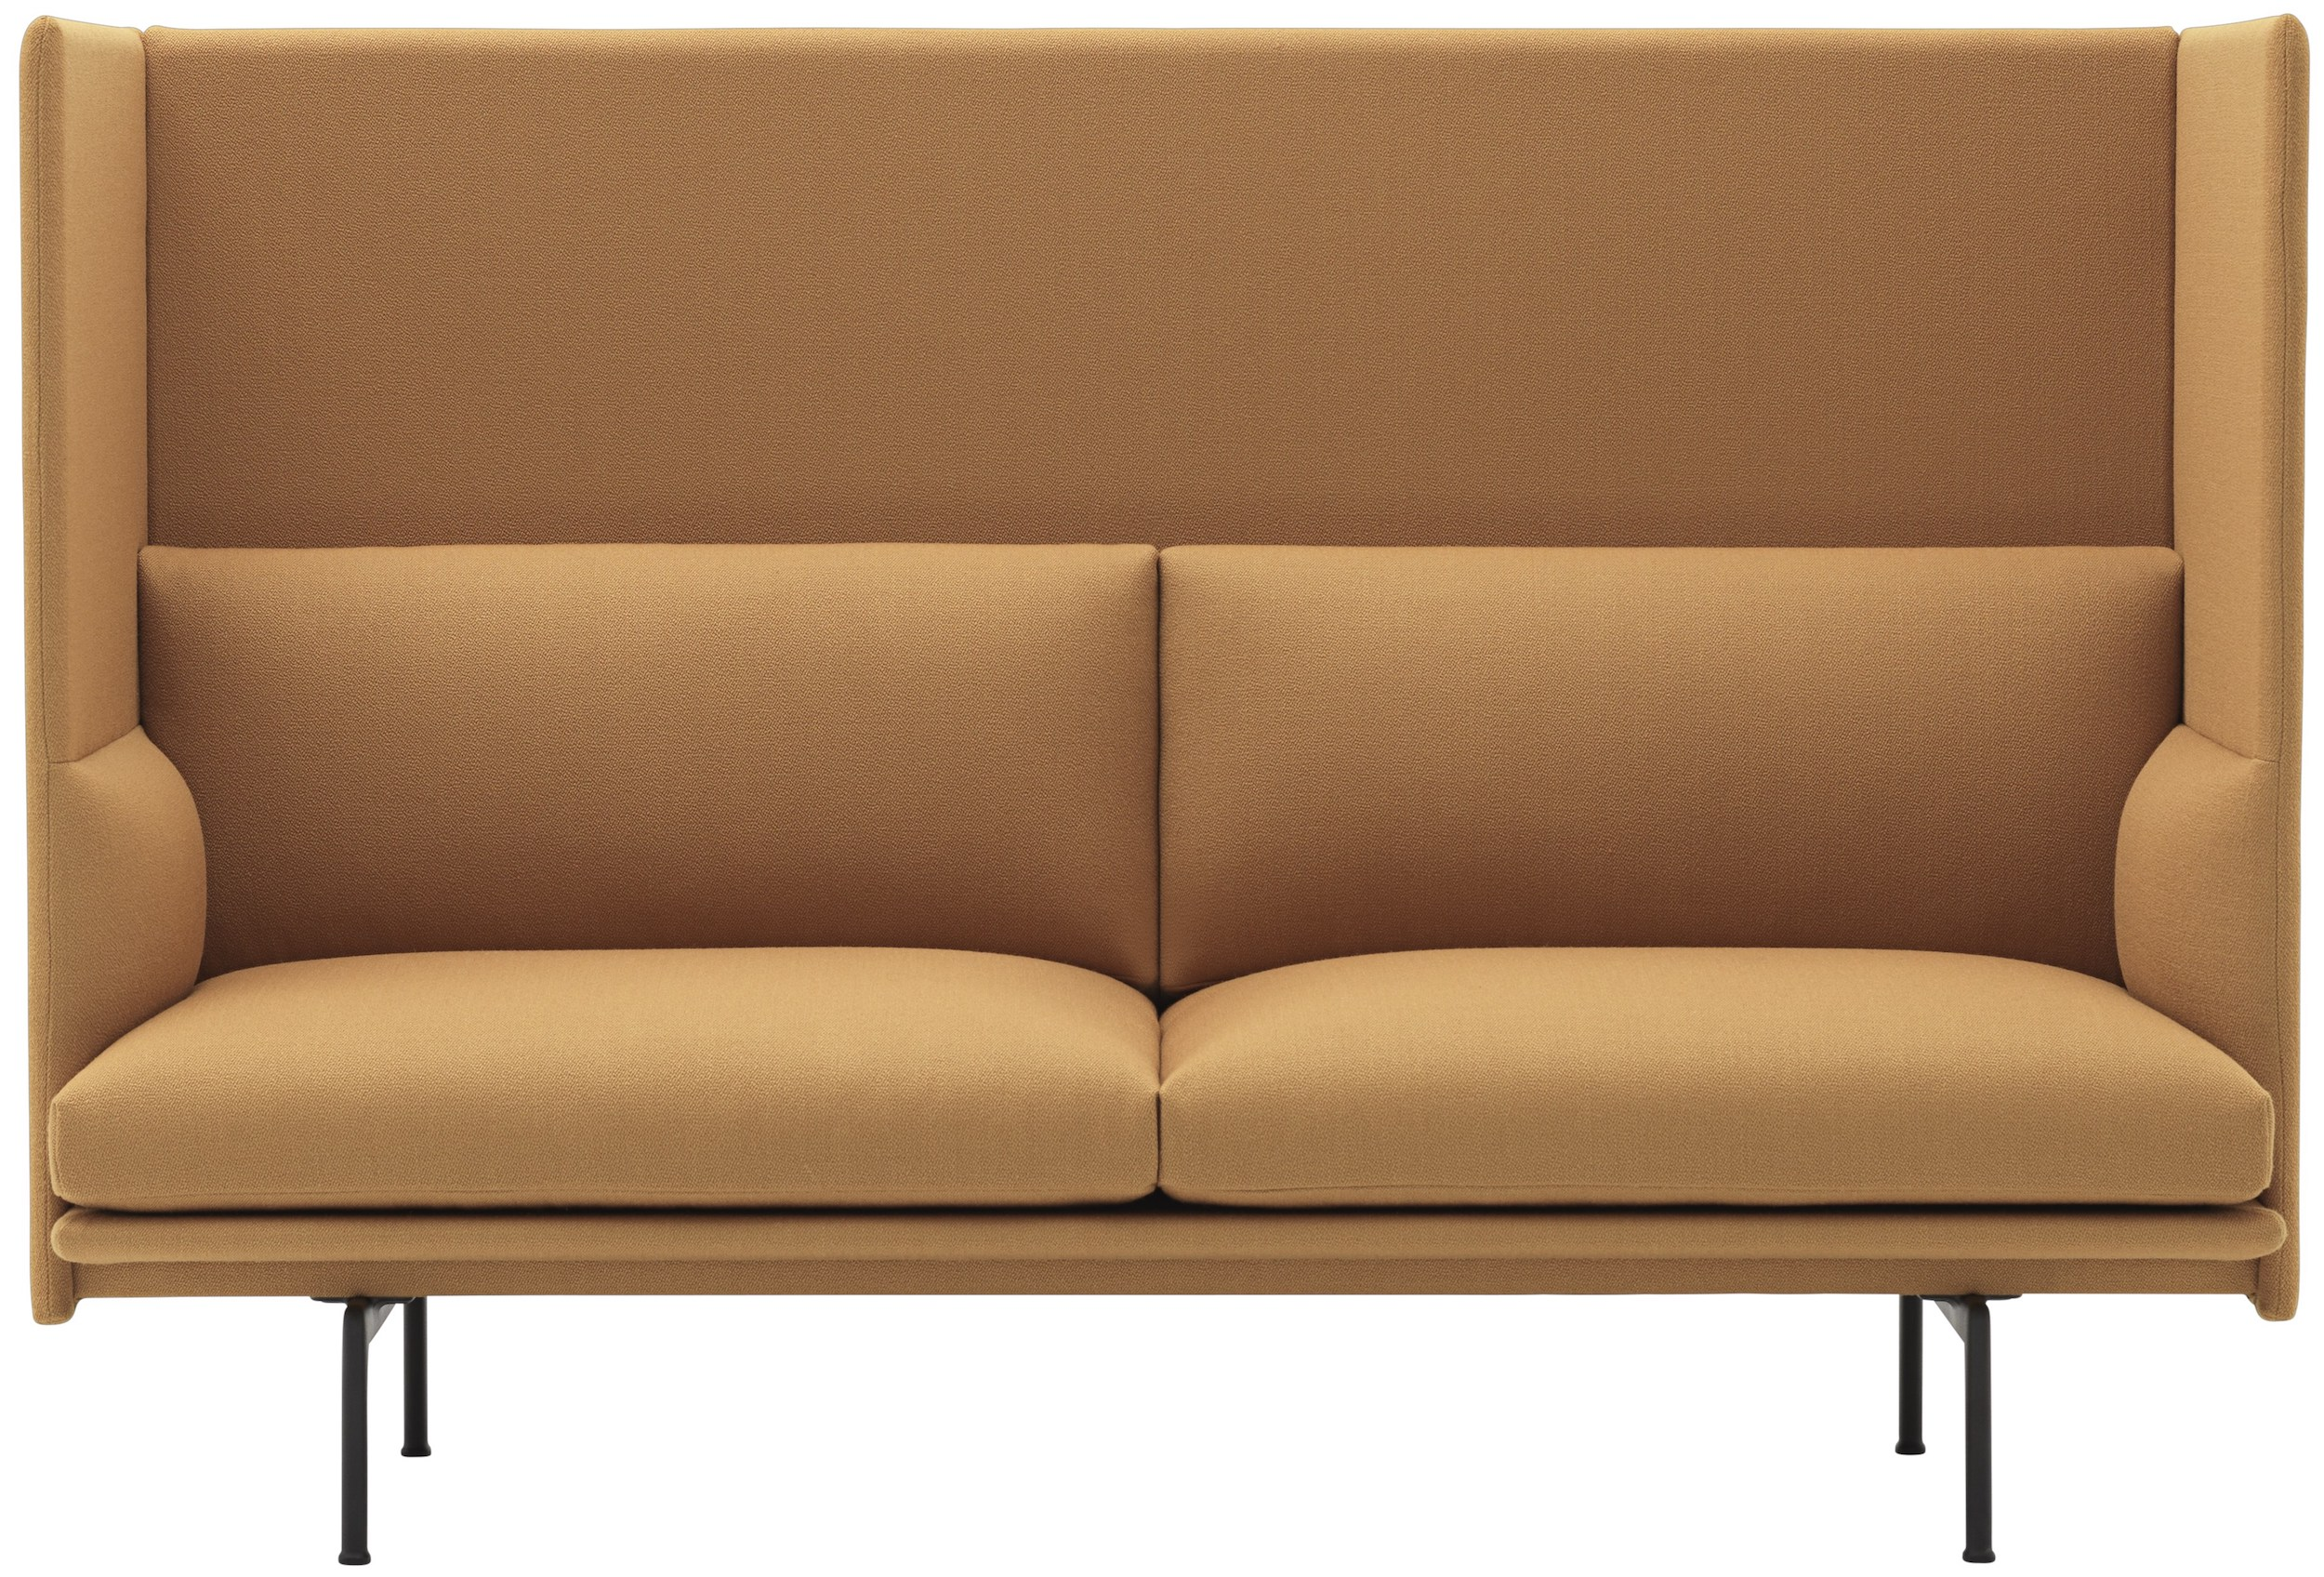 Full Size of Muuto Sofabord Cecilie Manz Sofa 2 Seater Oslo Review Rest Sale Connect Dimensions Outline 3 Modular Uk Airy 1/2 Workshop Compose Leather Highback Design Sofa Muuto Sofa